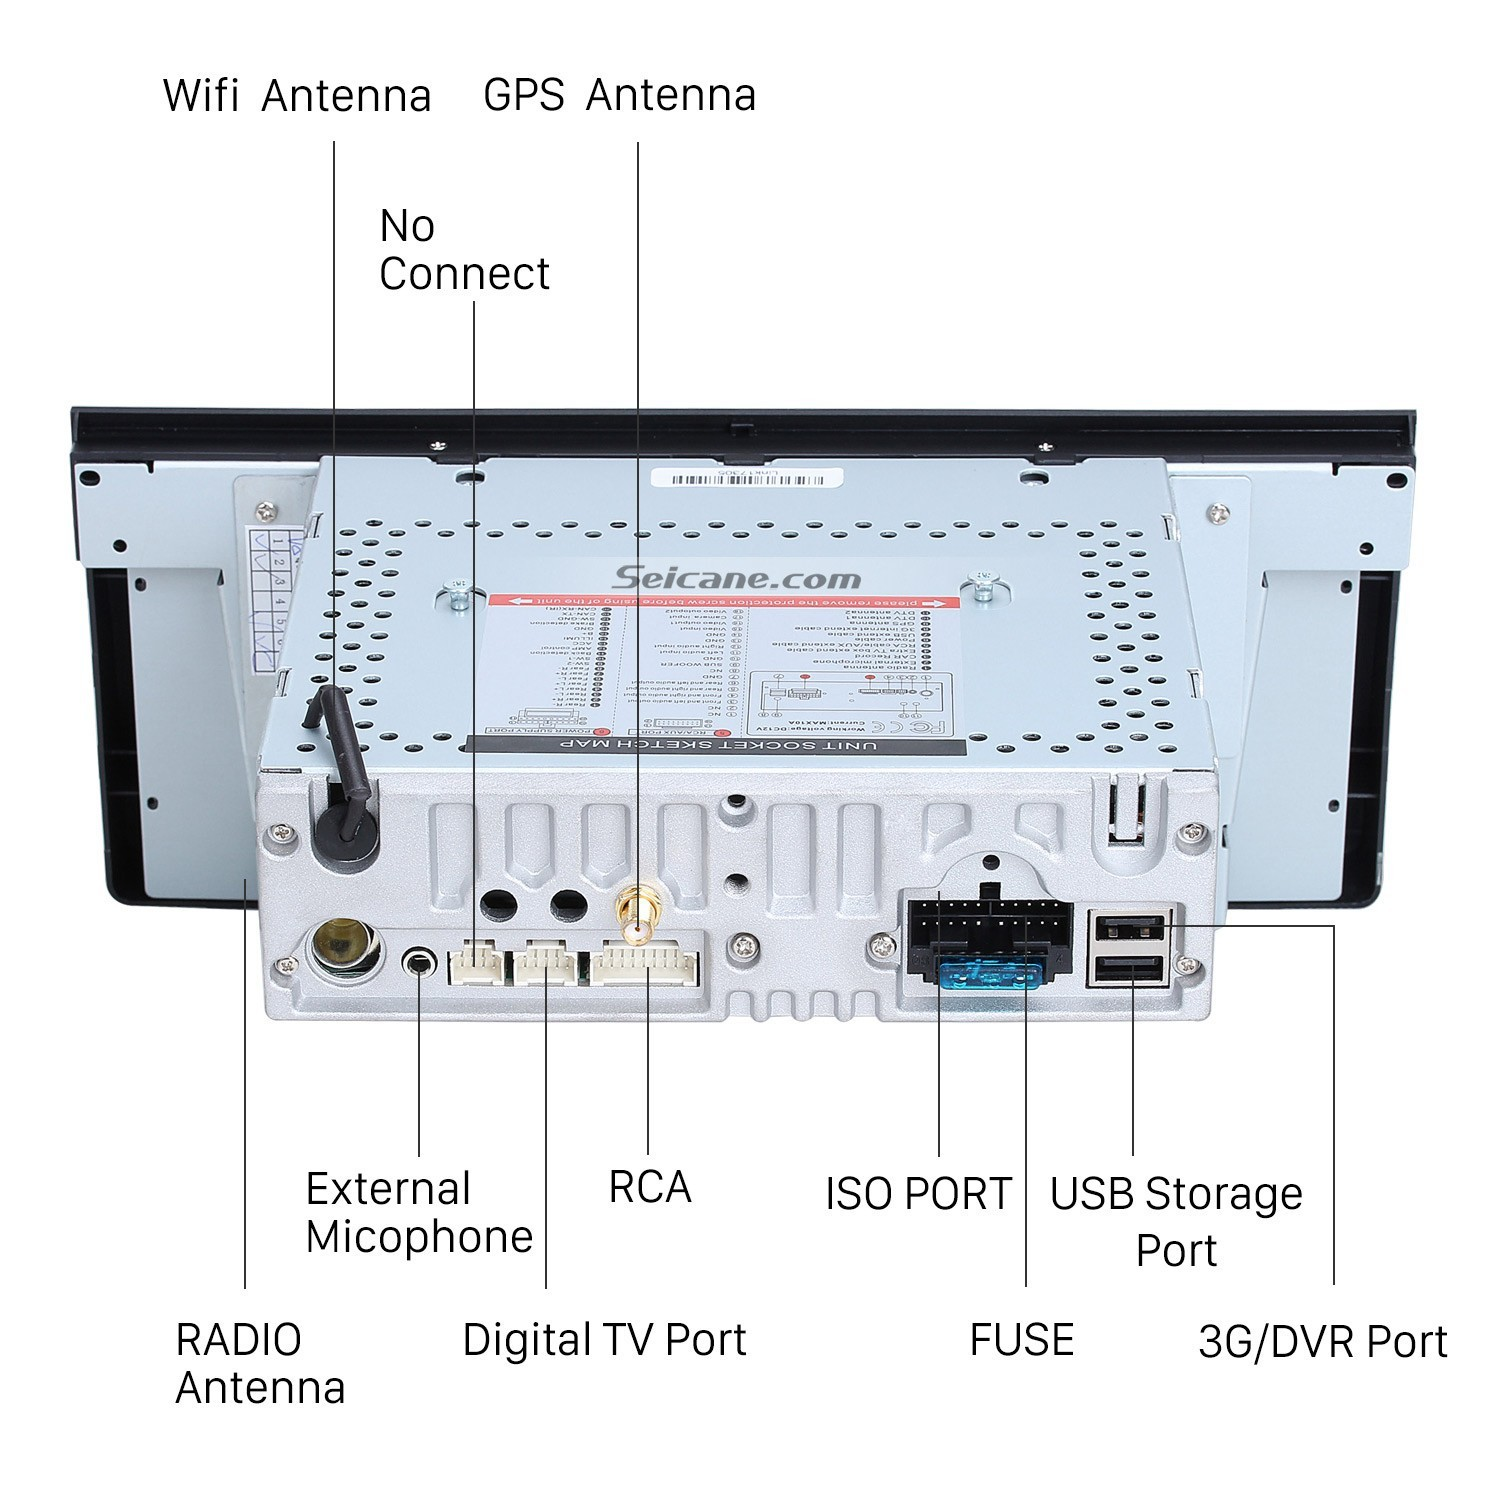 Car wiring diagram software lovely car stereo wiring diagram diagram car wiring diagram software lovely car stereo wiring diagram diagram asfbconference2016 Choice Image